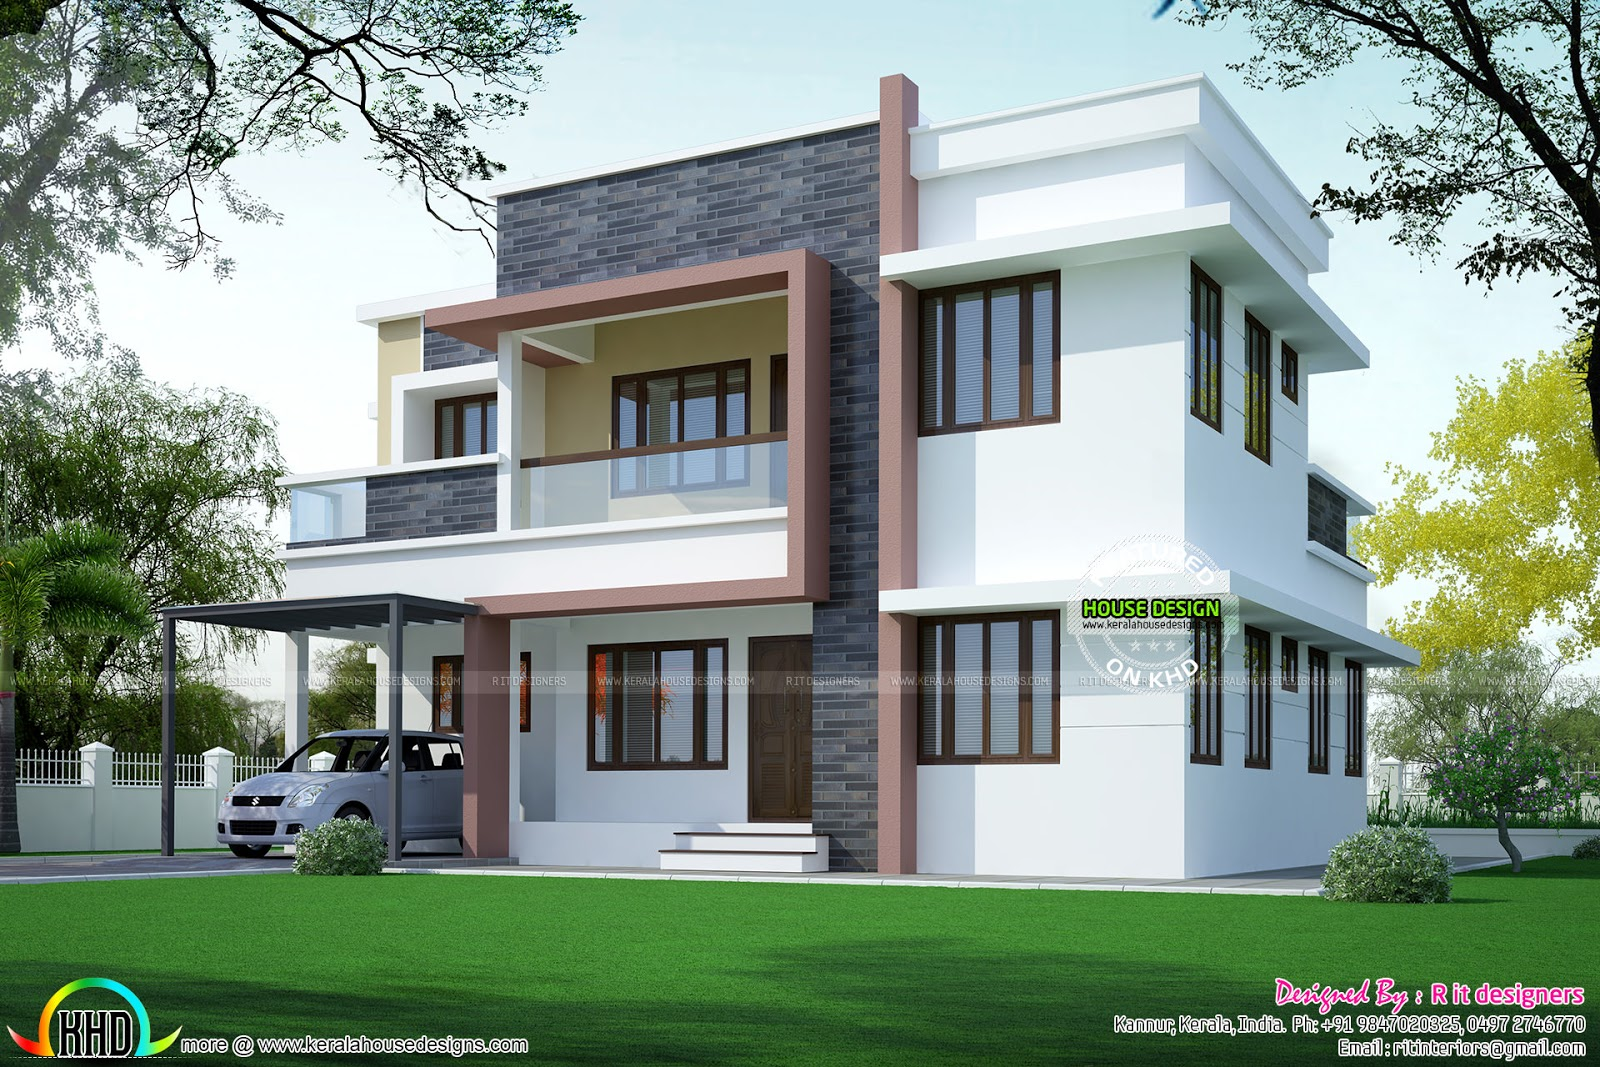 Simple home plan in modern style kerala home design and for Simple house design ideas